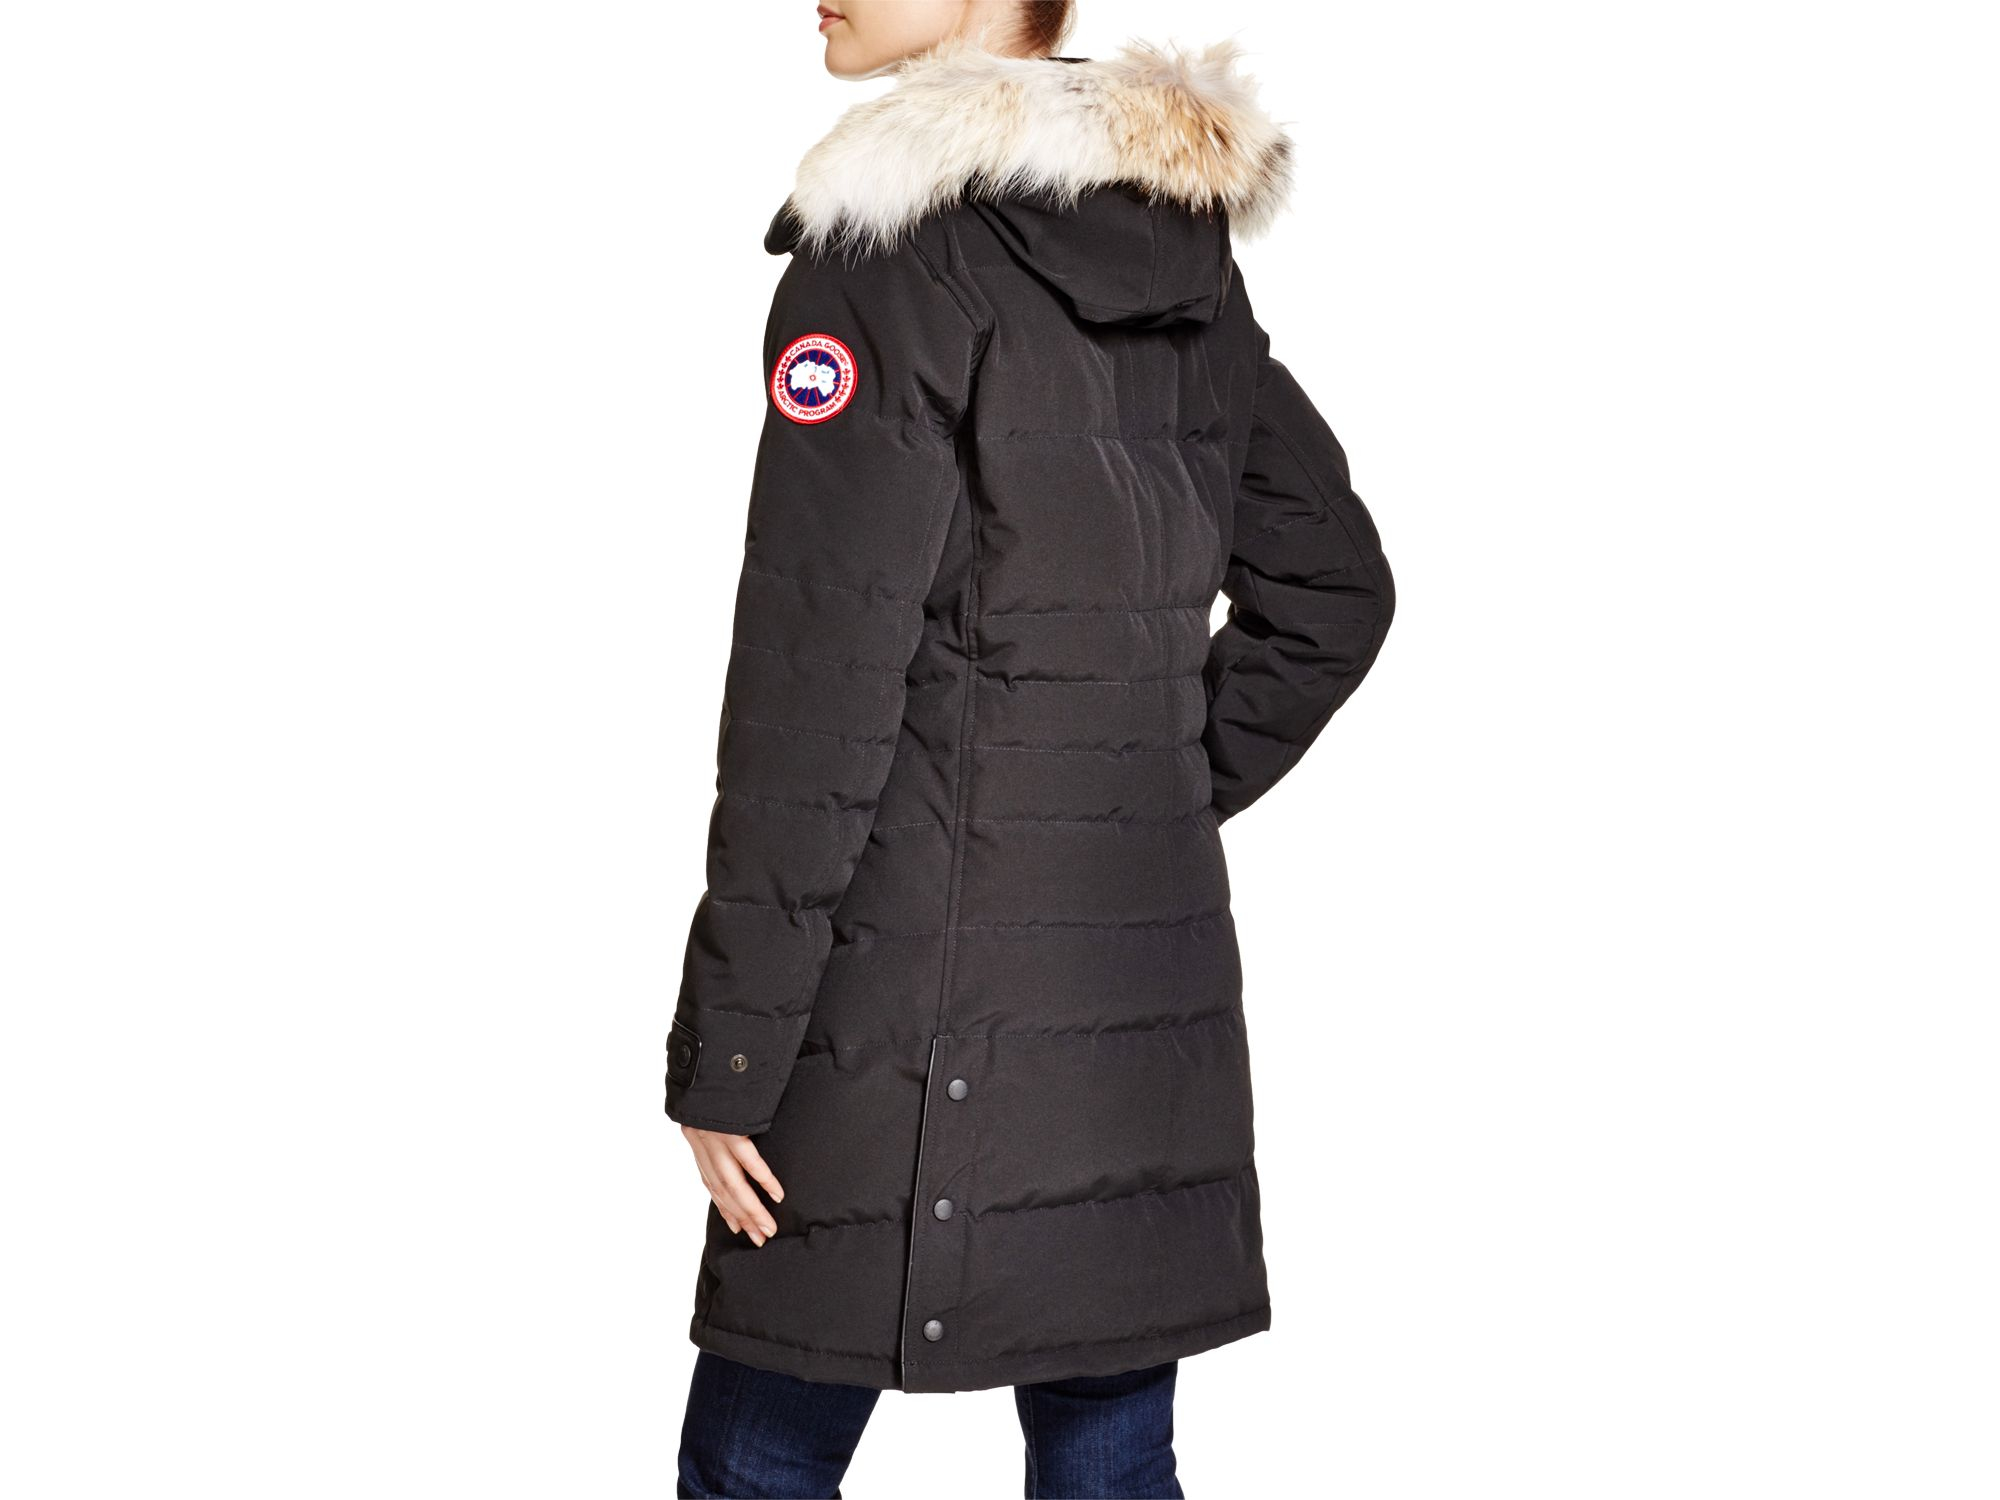 Canada Goose hats online cheap - Canada goose Lorette Coyote Fur Trim Down Coat in Black | Lyst